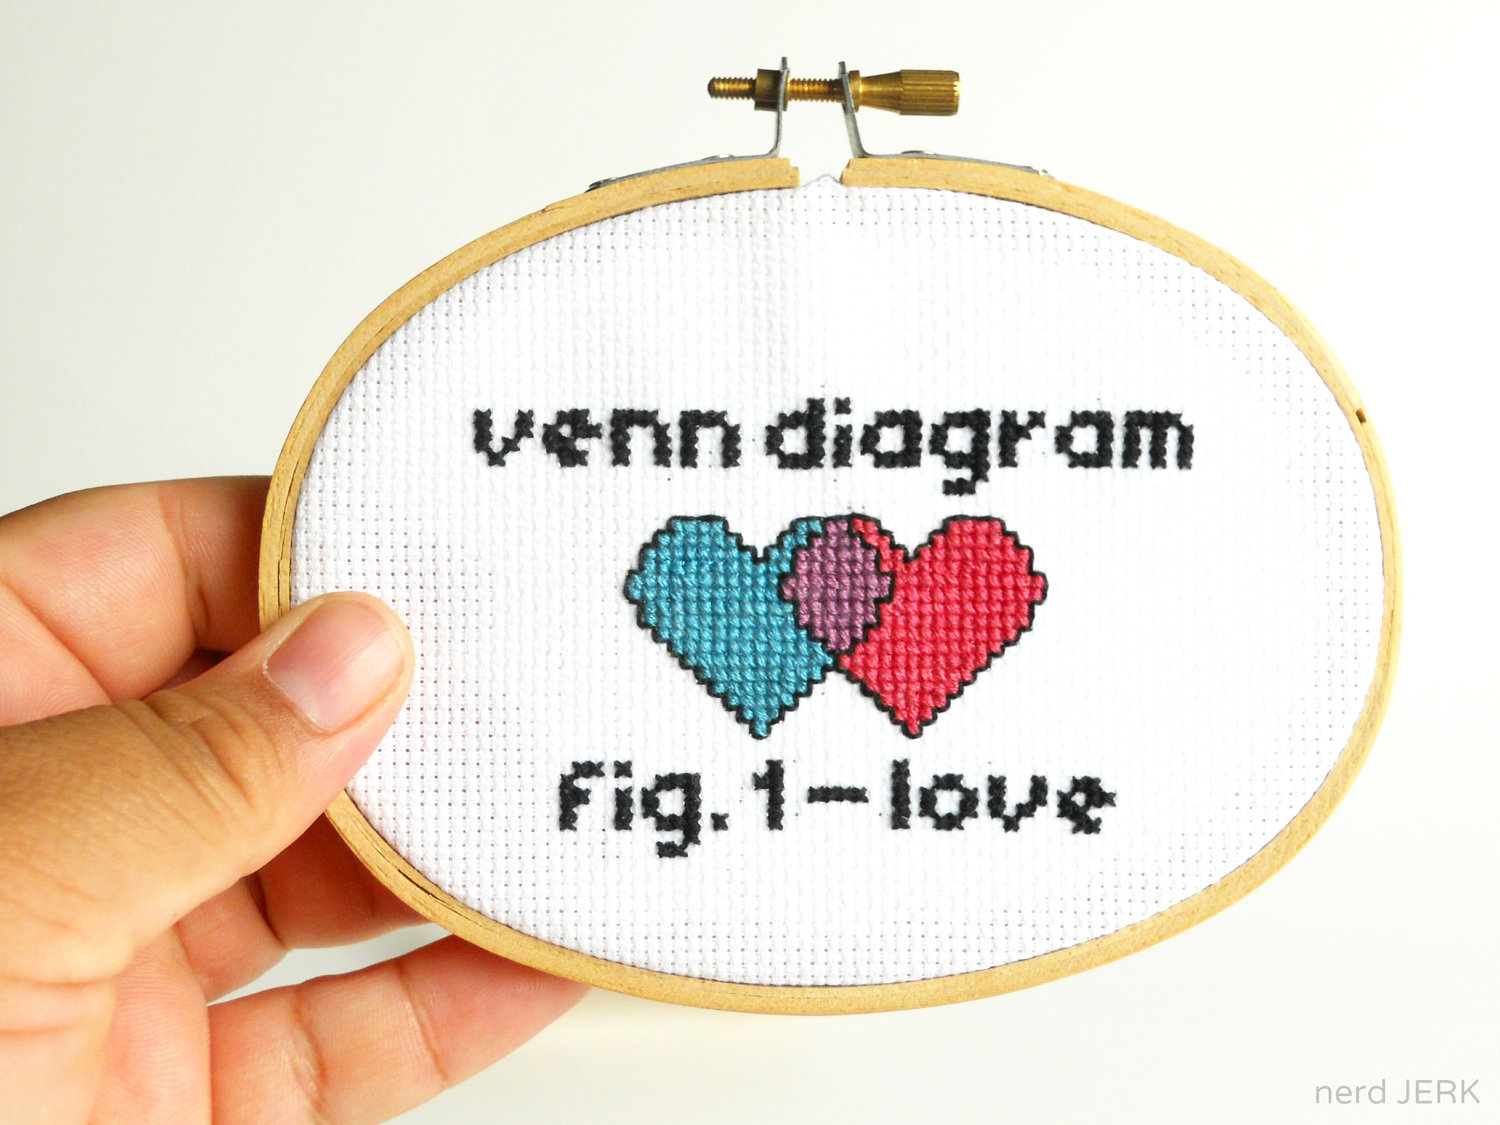 Diy nerdy cross stitch kit venn diagram of love 008 complete ilfullxfull407197636icdporiginal pooptronica Gallery